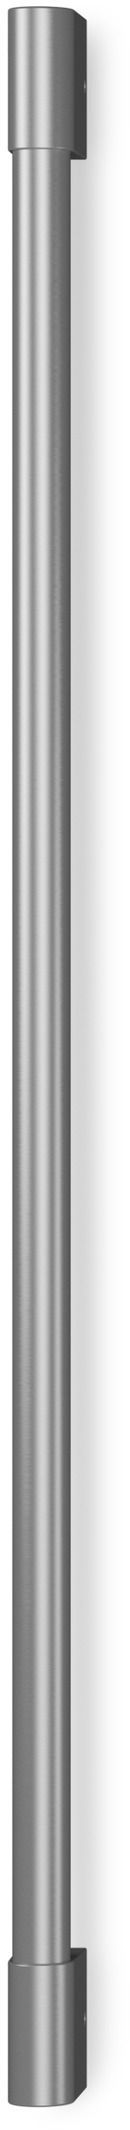 Monogram® Statement Stainless Steel Handle Kit-ZXGP1H1PPSS